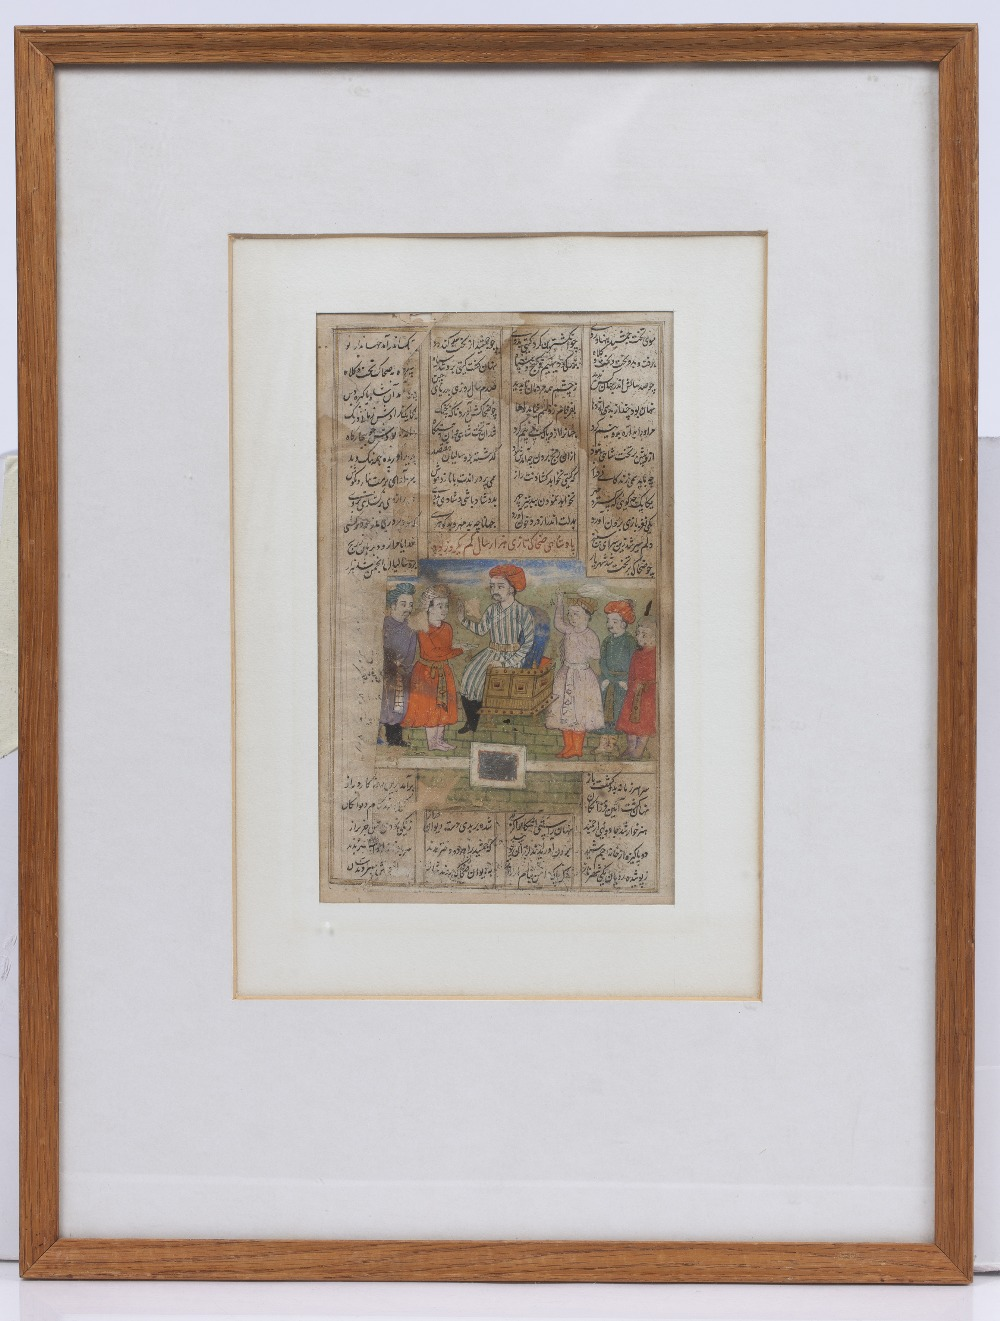 A LEAF FROM AN ANTIQUE PERSIAN TEXT printed with seated figure and attendants with script above - Image 2 of 3